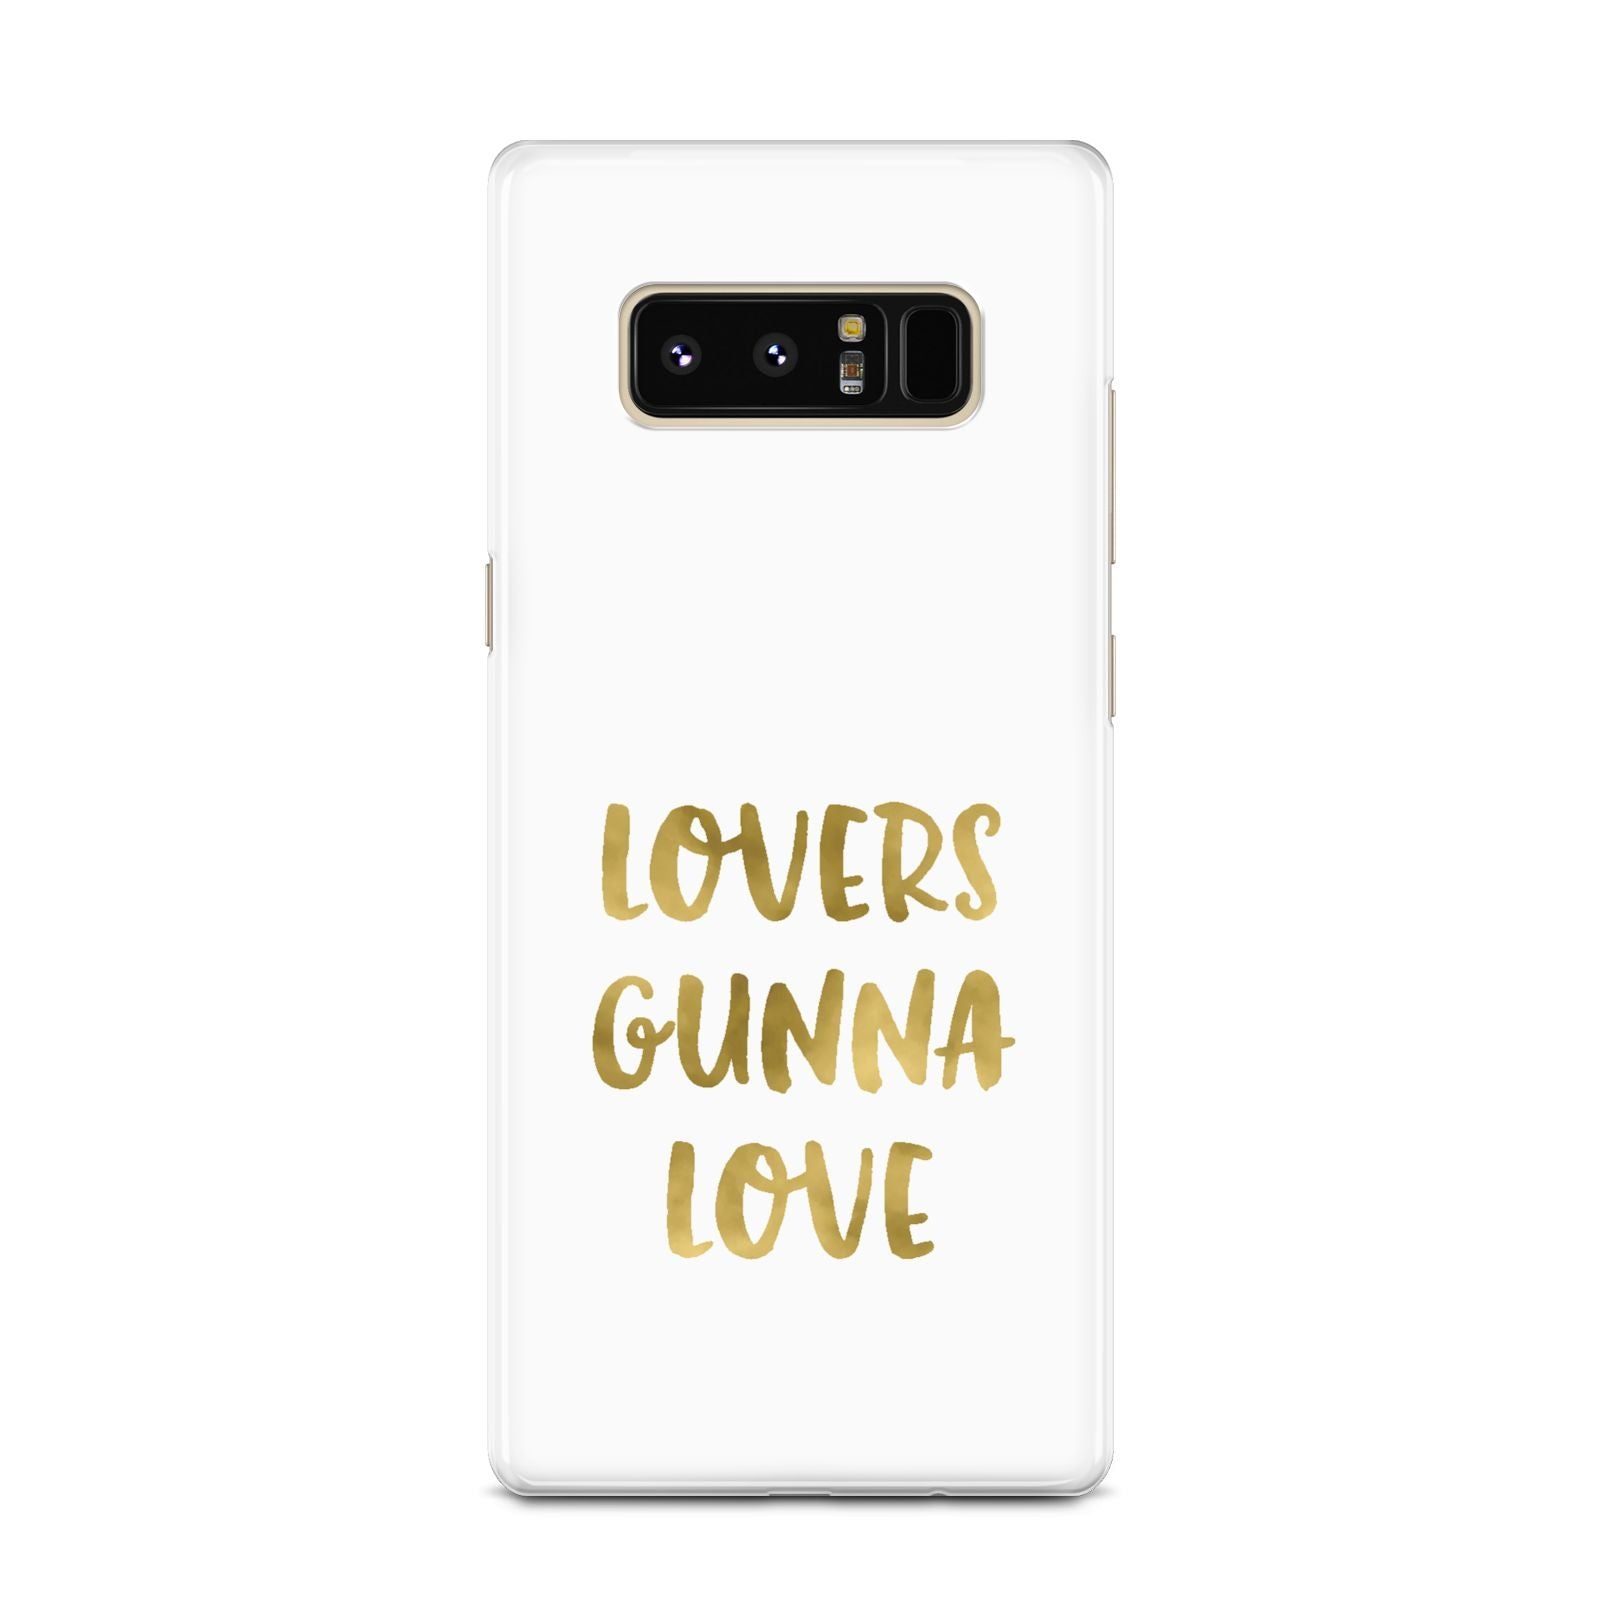 Lovers Gunna Love Real Gold Foil Samsung Galaxy Note 8 Case